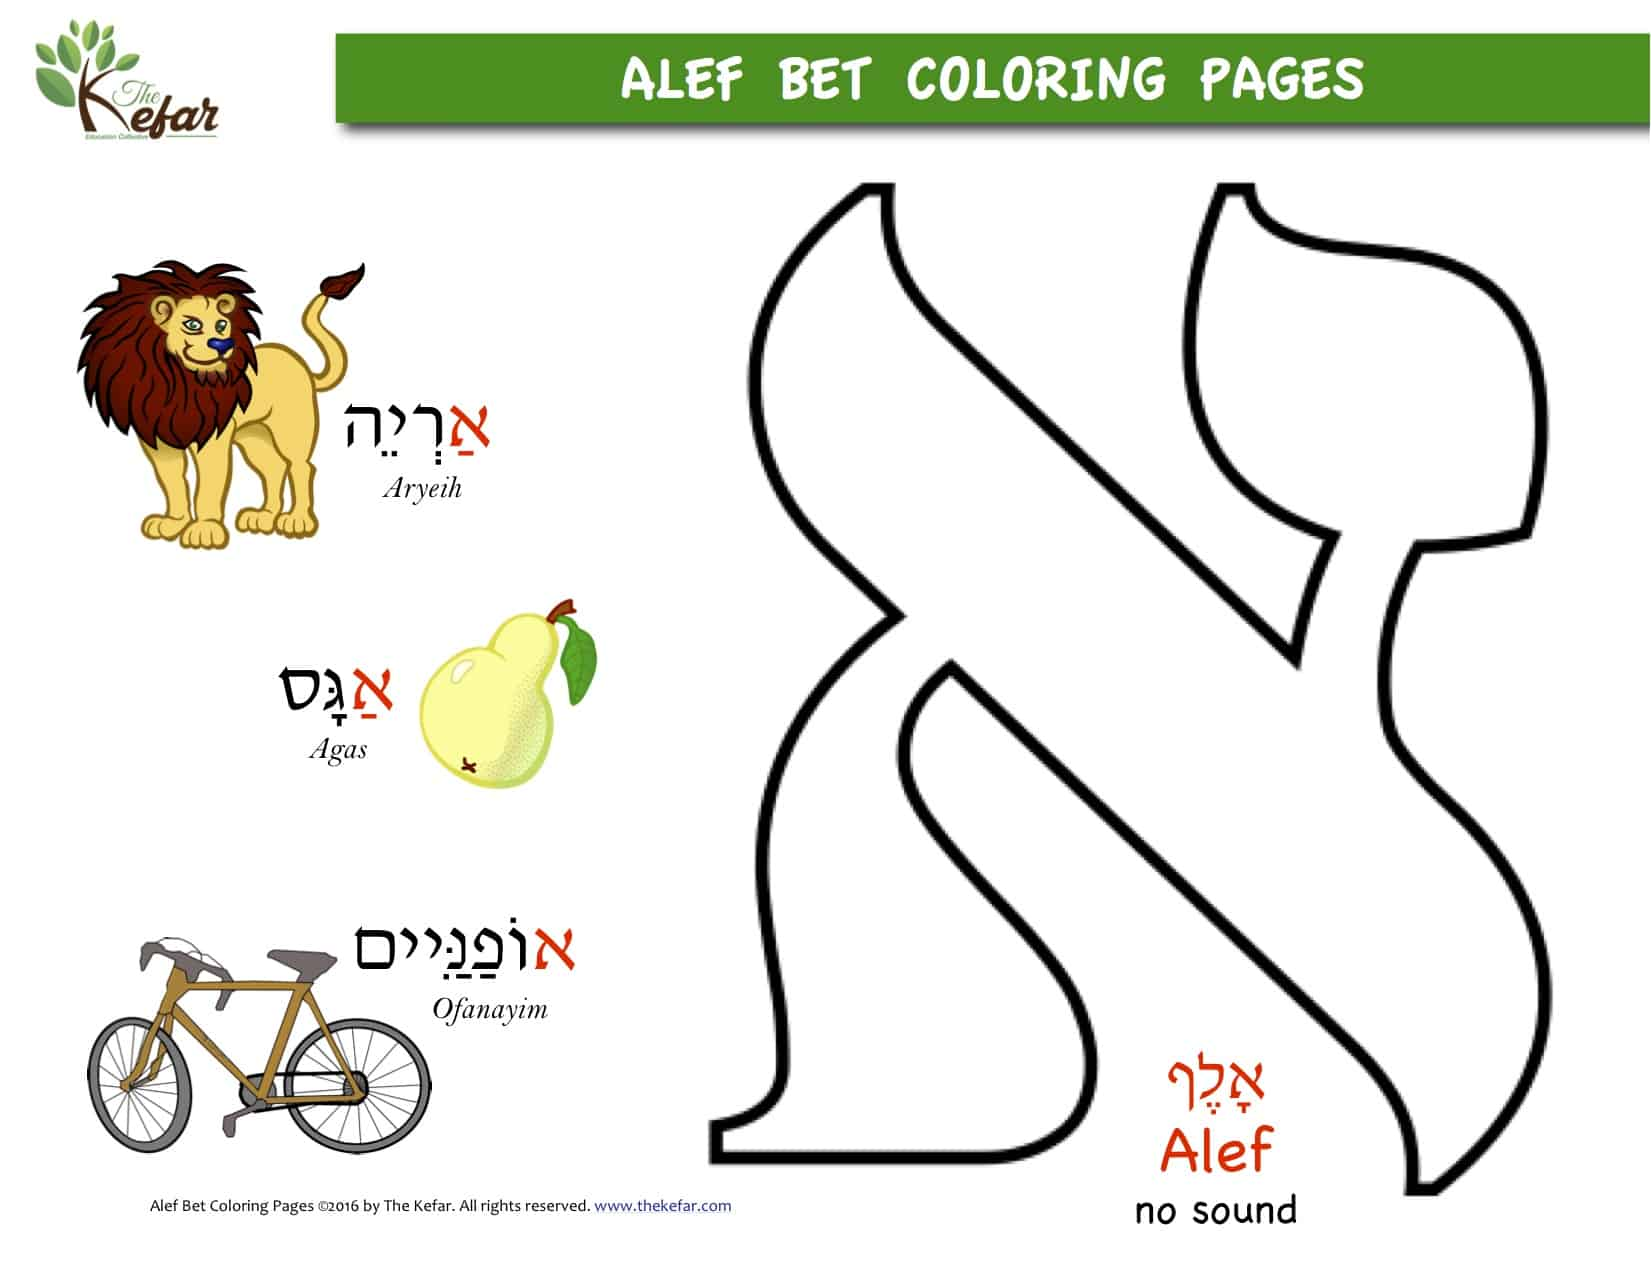 alef bet coloring pages